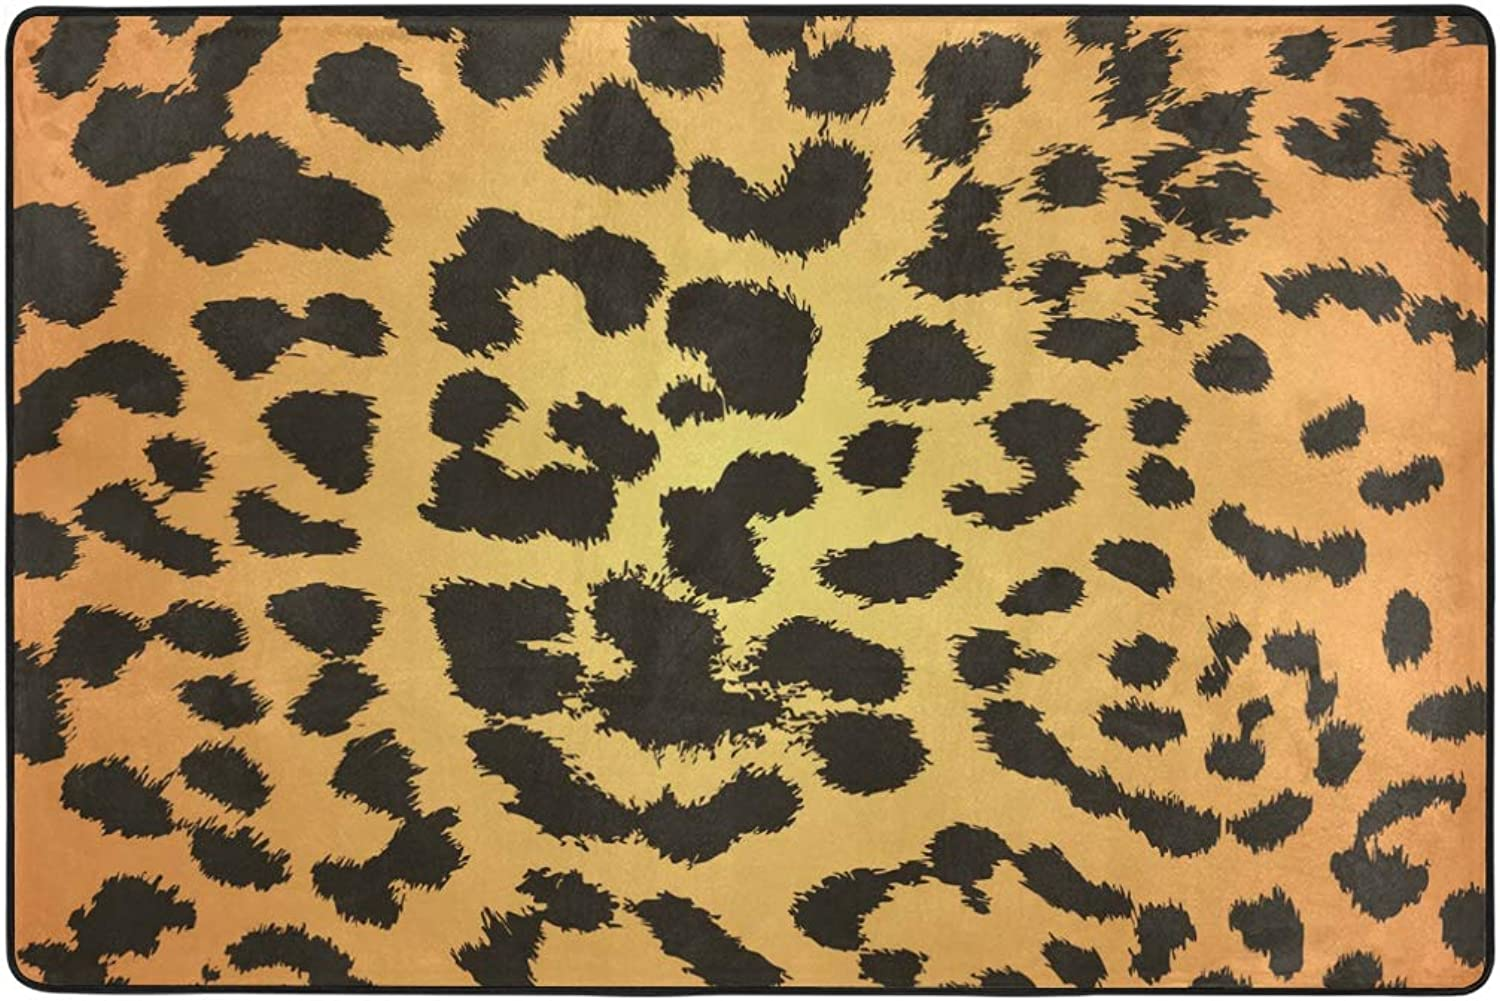 MONTOJ Particular Leopard Print Weathertech Floor mats Area Rugs for Living Room Bedroom Home Decoration Carpet Doormat Wearproof